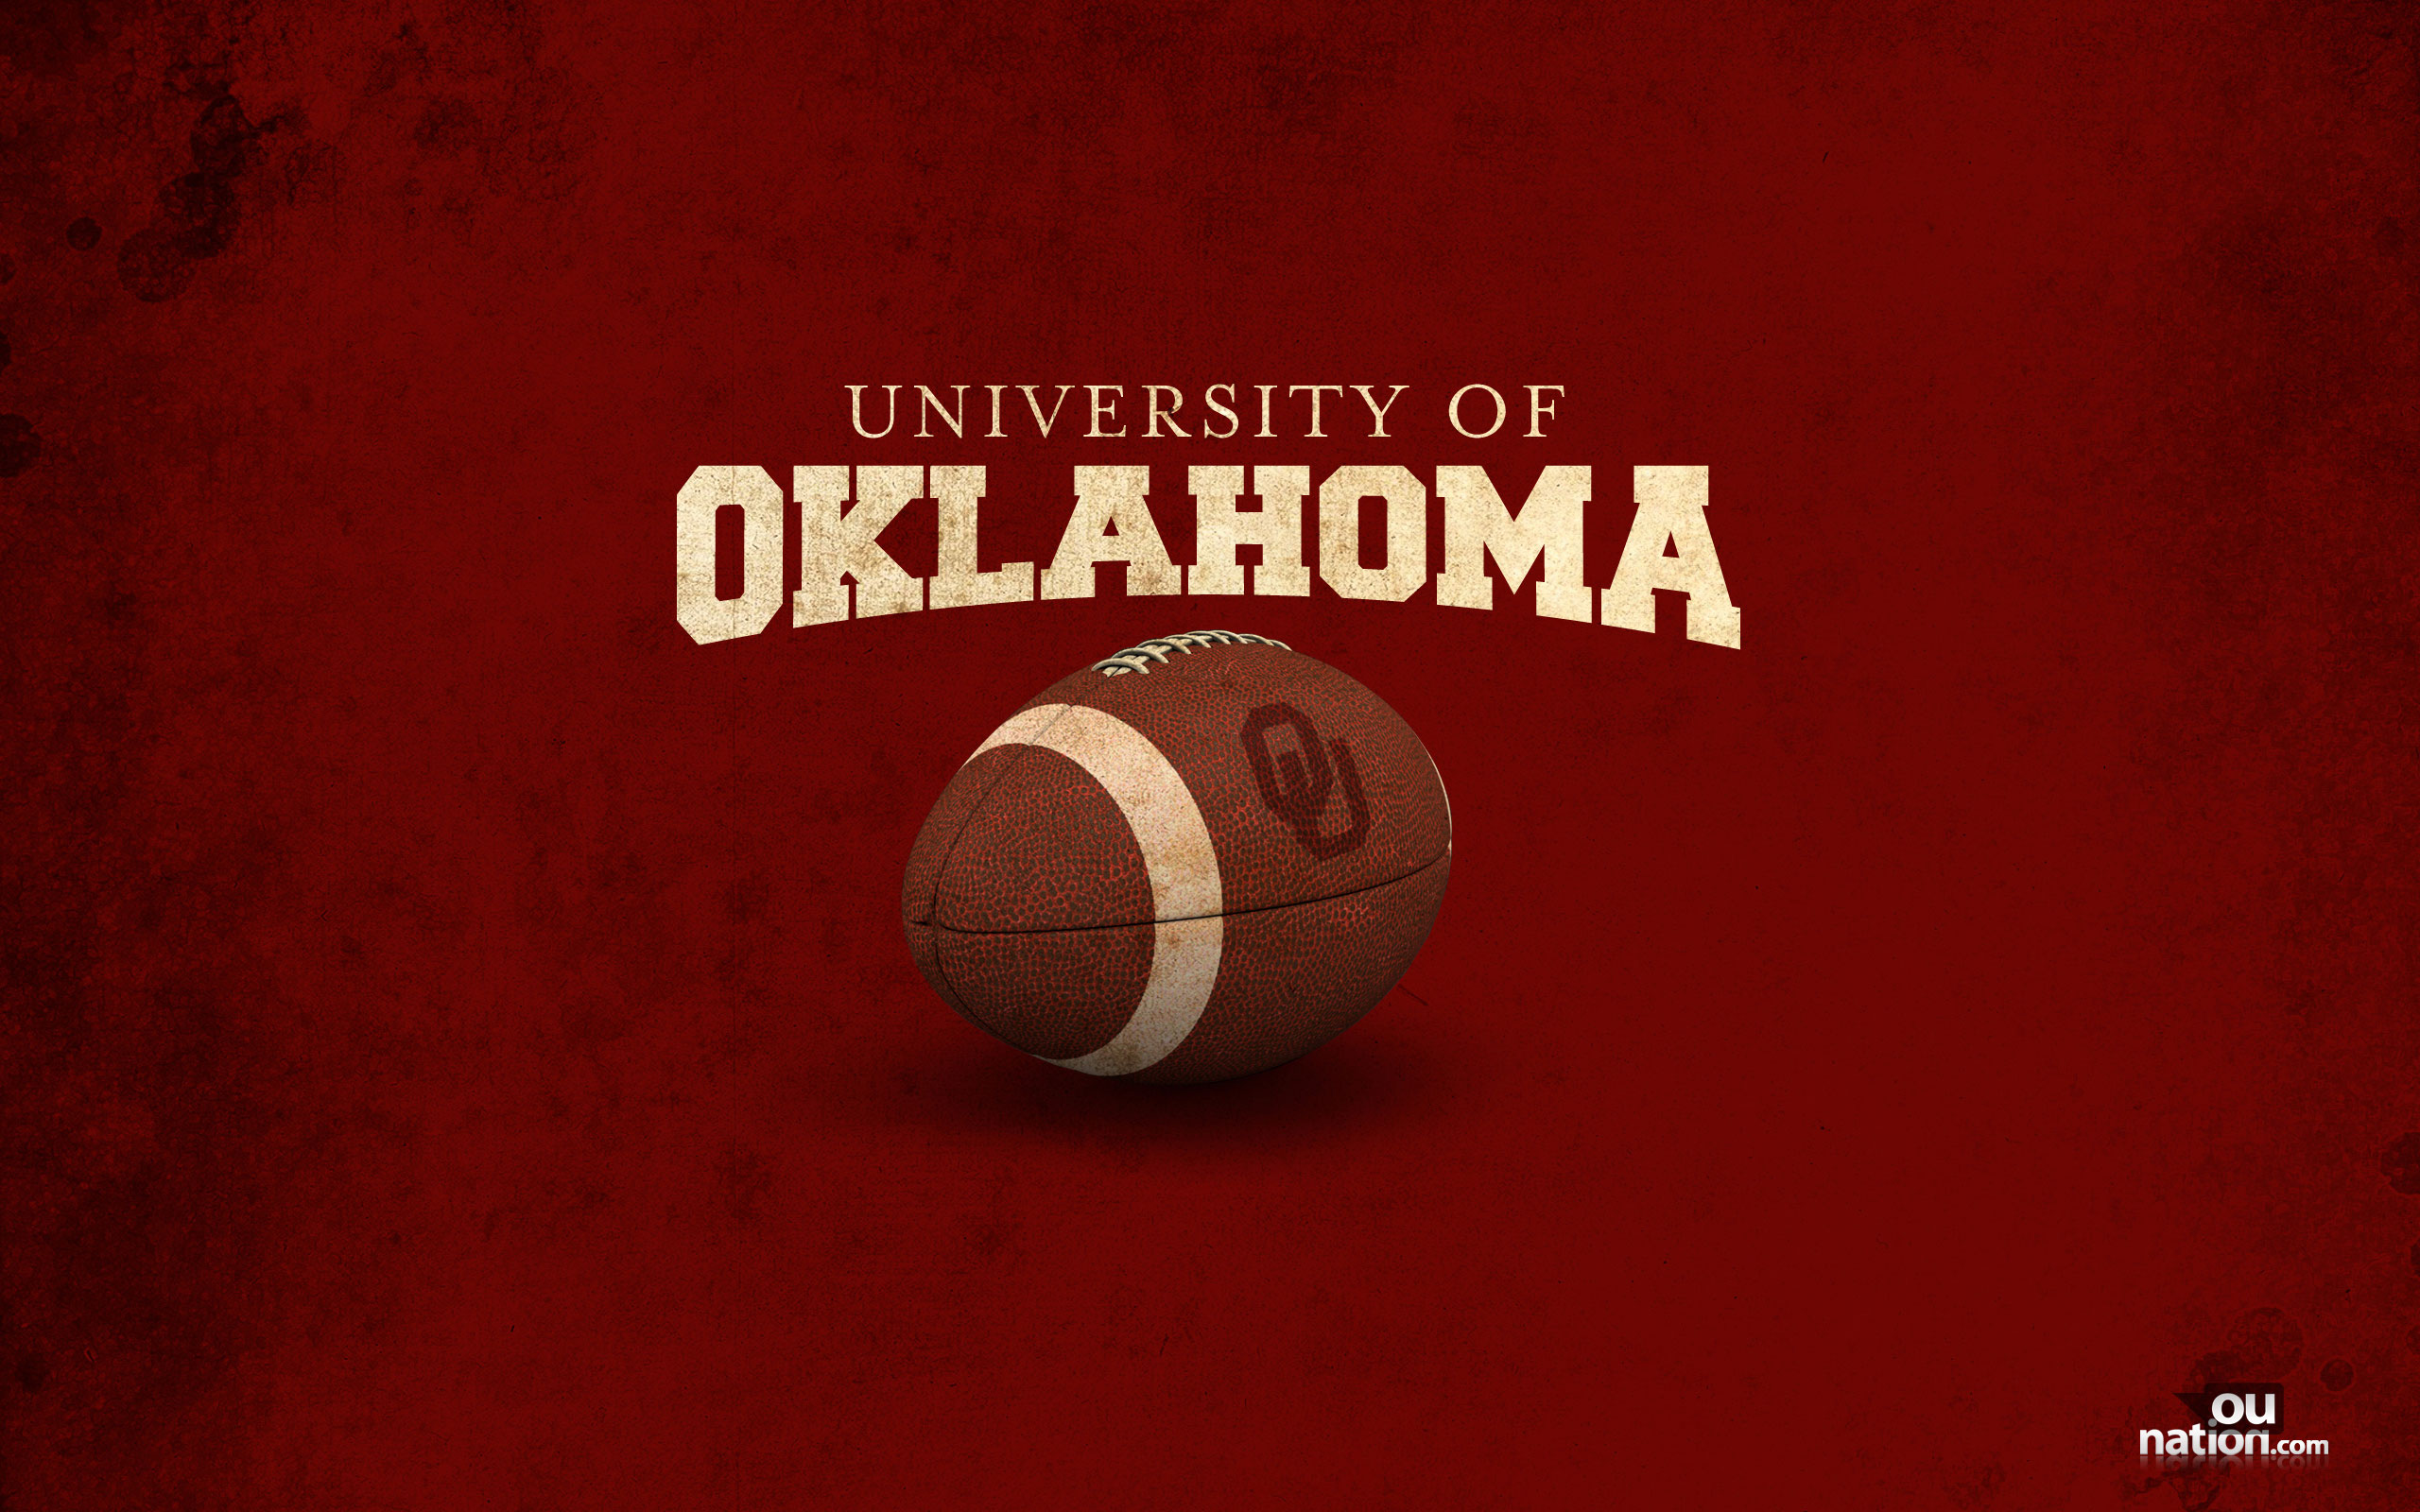 Oklahoma Sooners Chrome Wallpapers Browser Themes And HD Wallpapers Download Free Images Wallpaper [1000image.com]